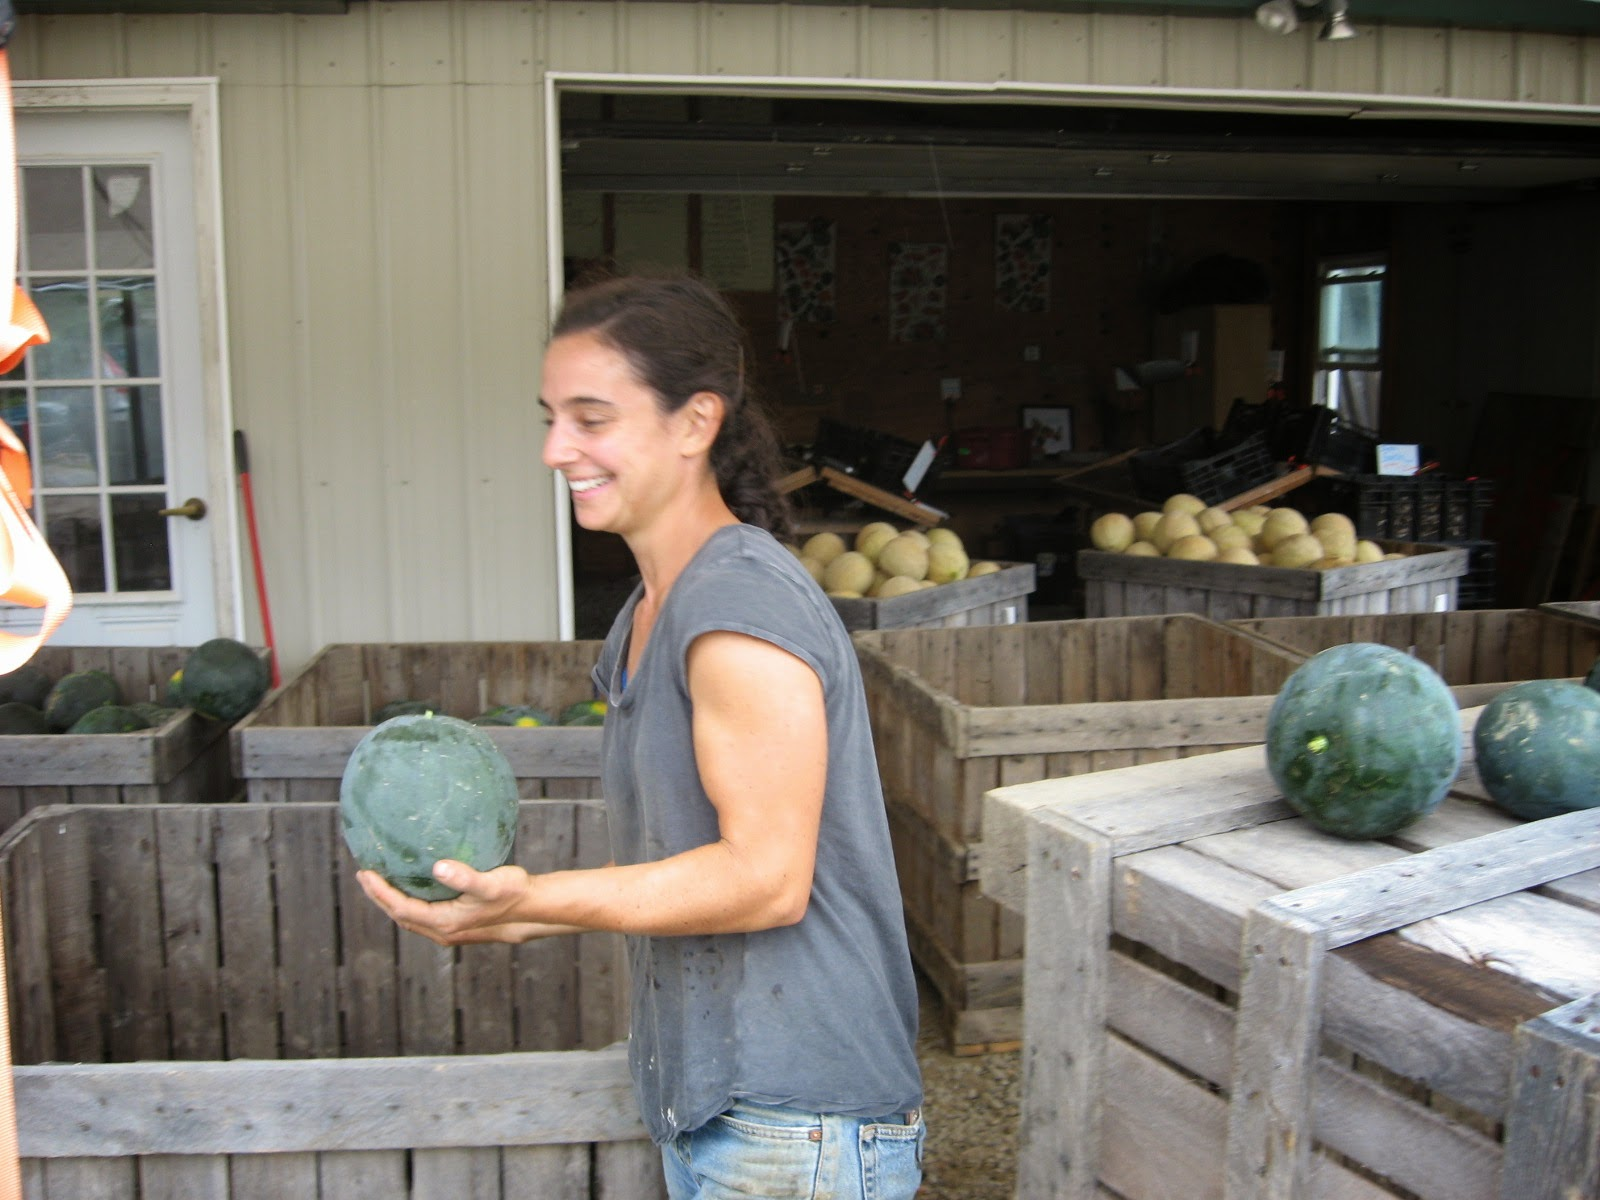 Mira sorting watermelons